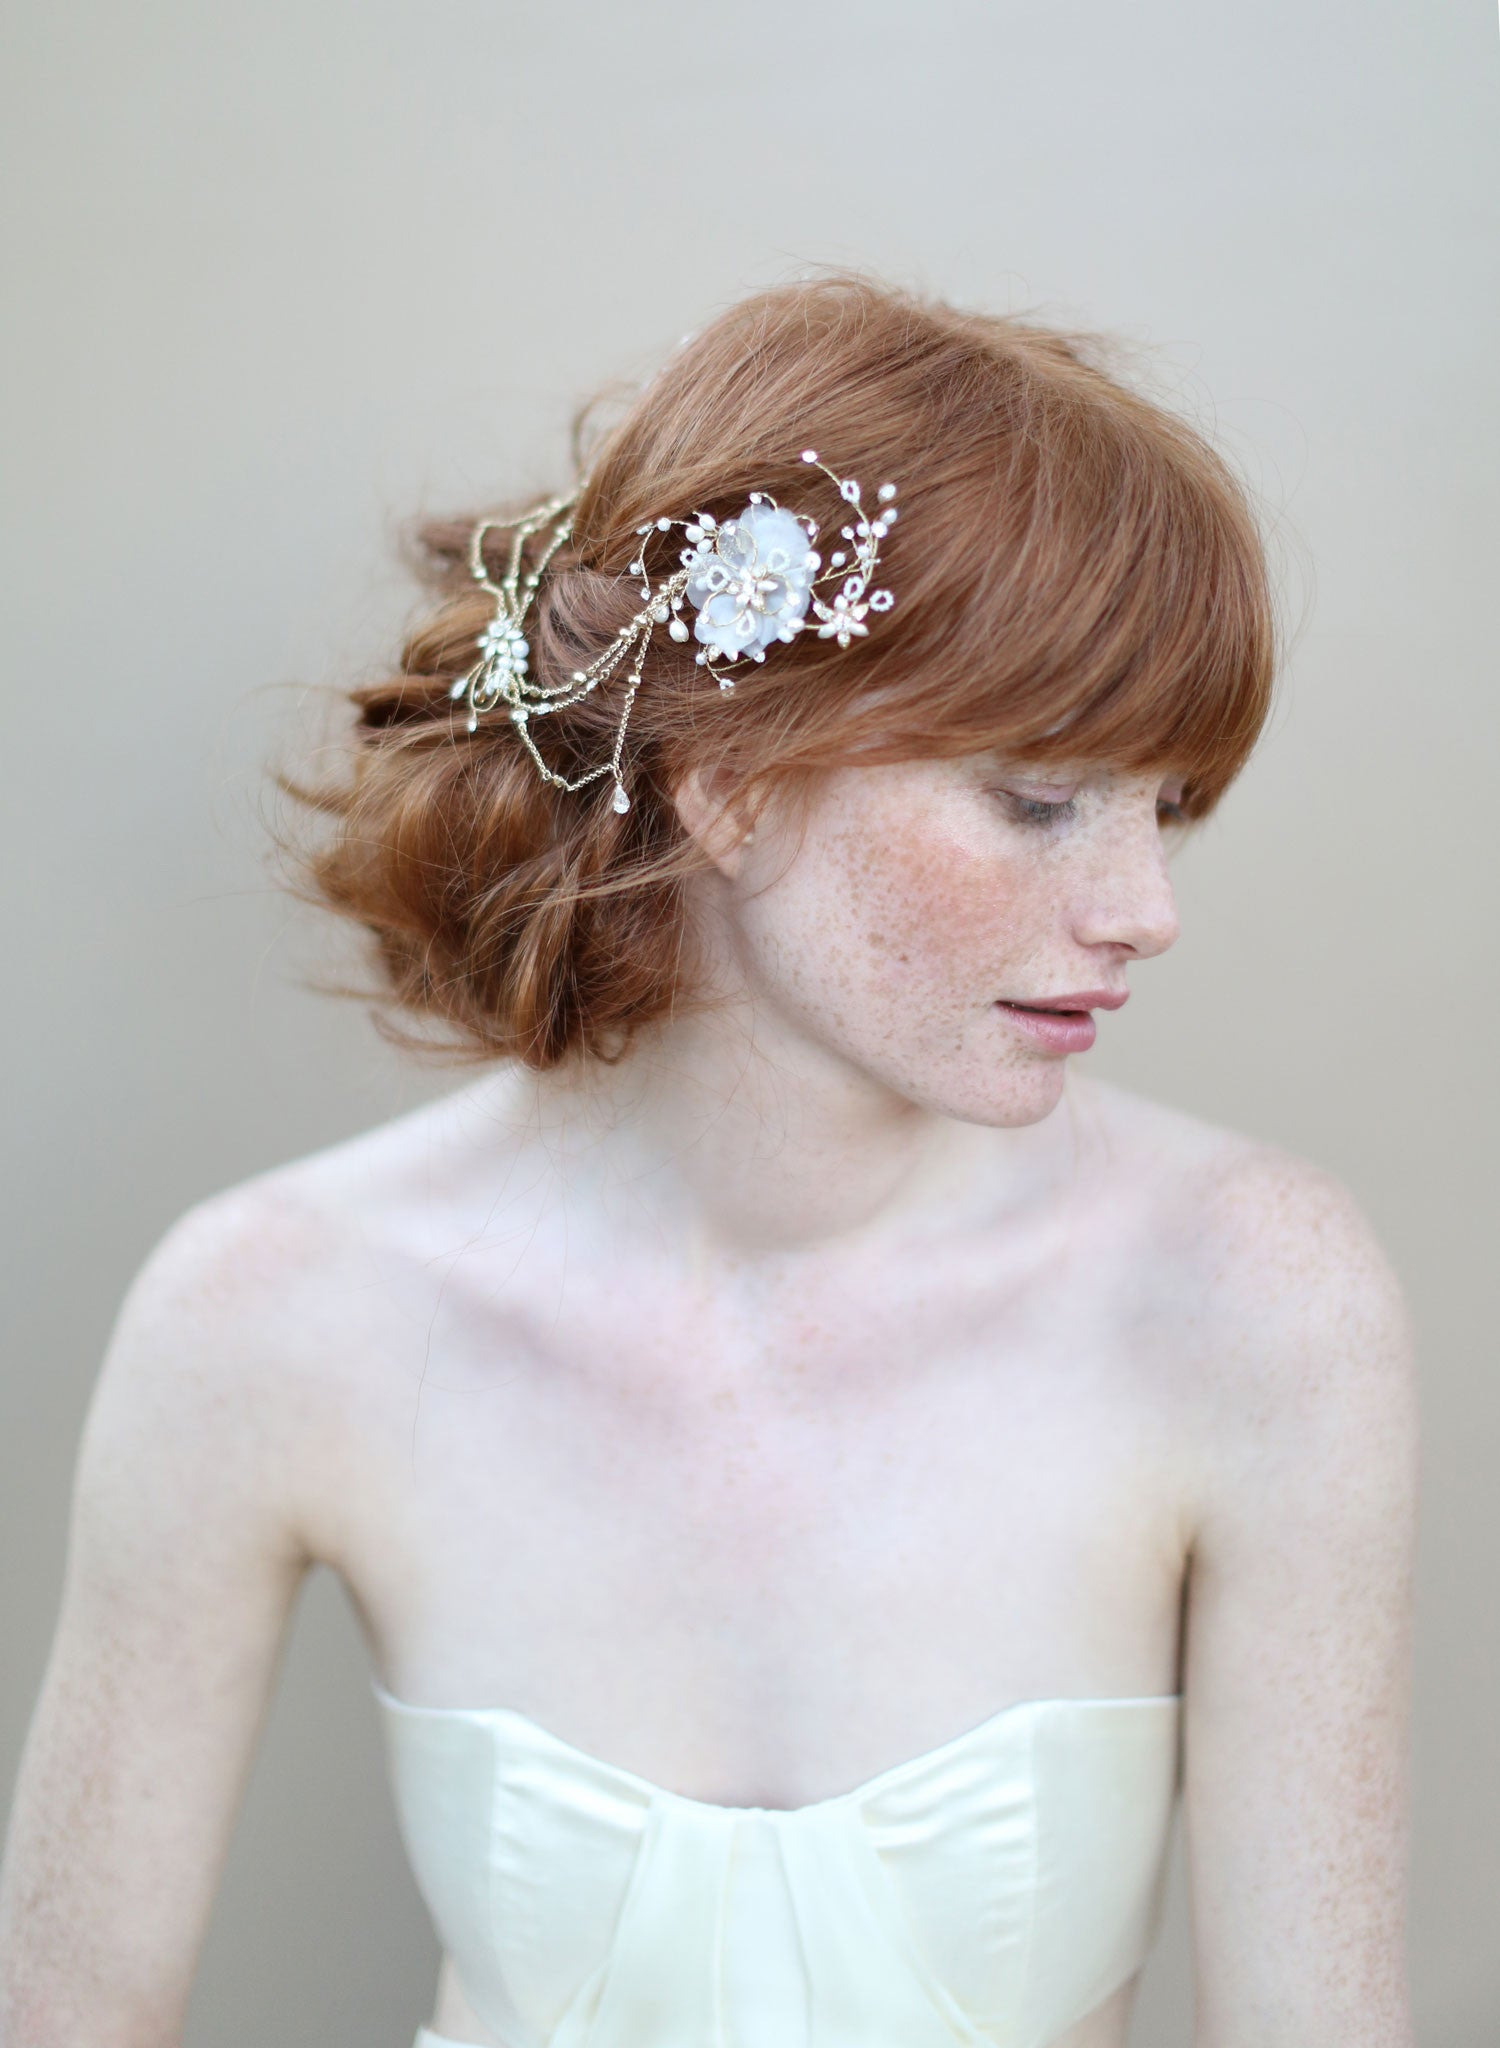 Double flower headpiece with chain swags - Style # 343